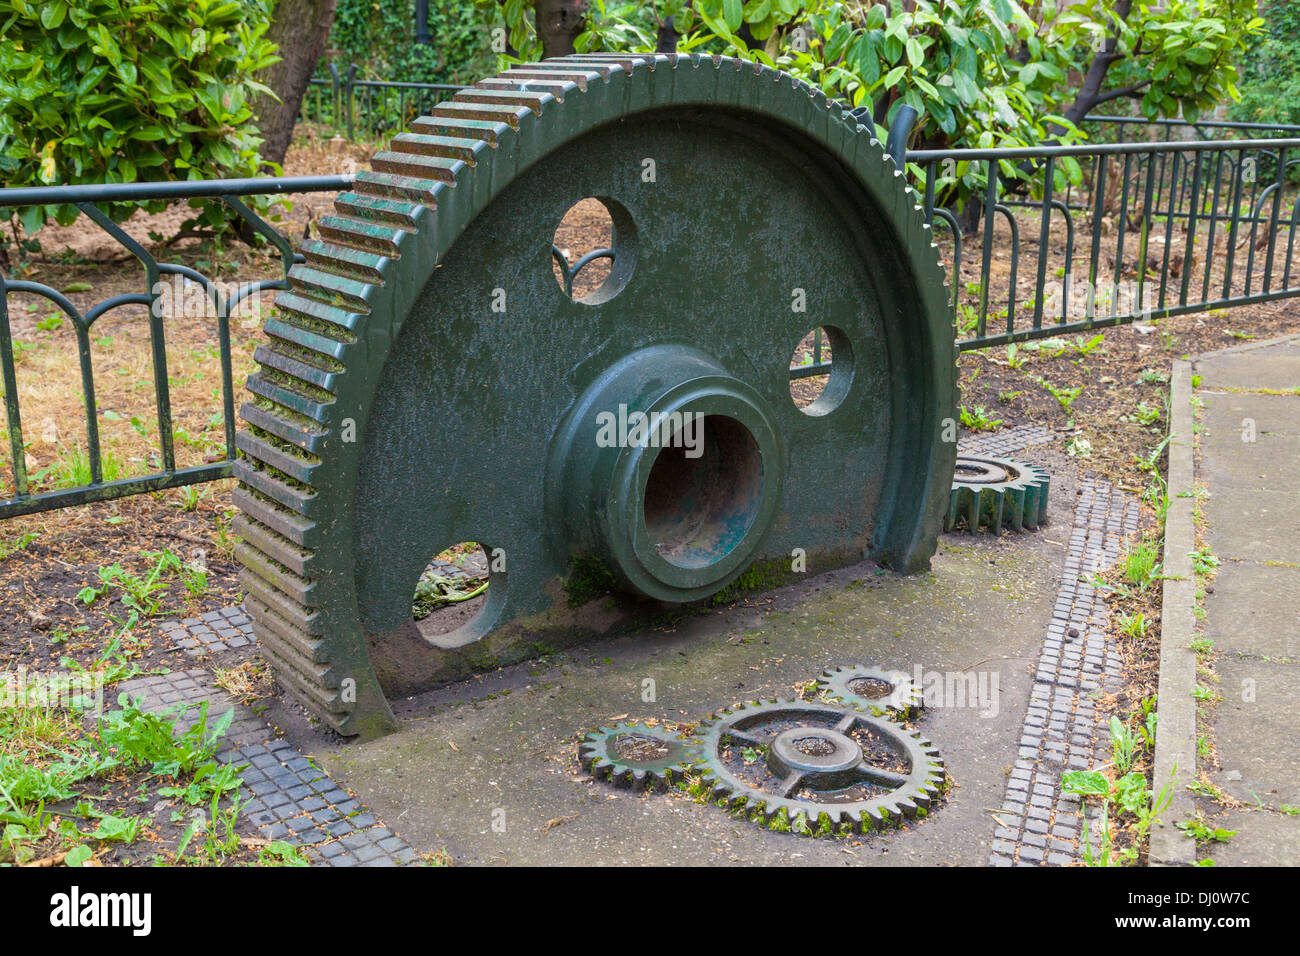 Display of gears from the windmill at Green's Mill, Sneinton, Nottingham, England, UK - Stock Image